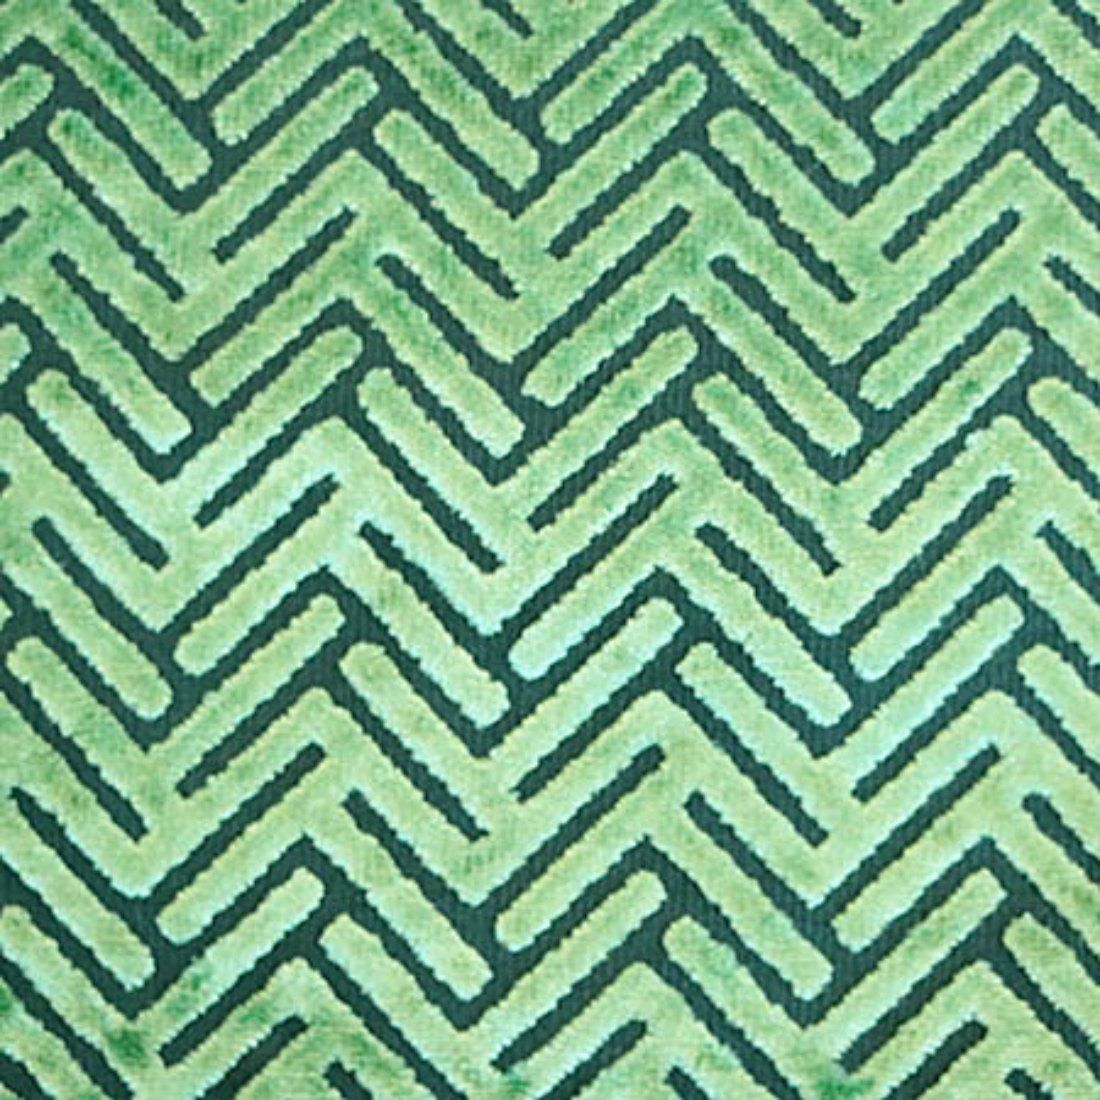 Apollo - Burnout Velvet Fabric Drapery & Upholstery Fabric by the Yard - Available in 12 Colors #velvetupholsteryfabric Apollo - Geometric Burnout Velvet Upholstery Fabric by the Yard #velvetupholsteryfabric